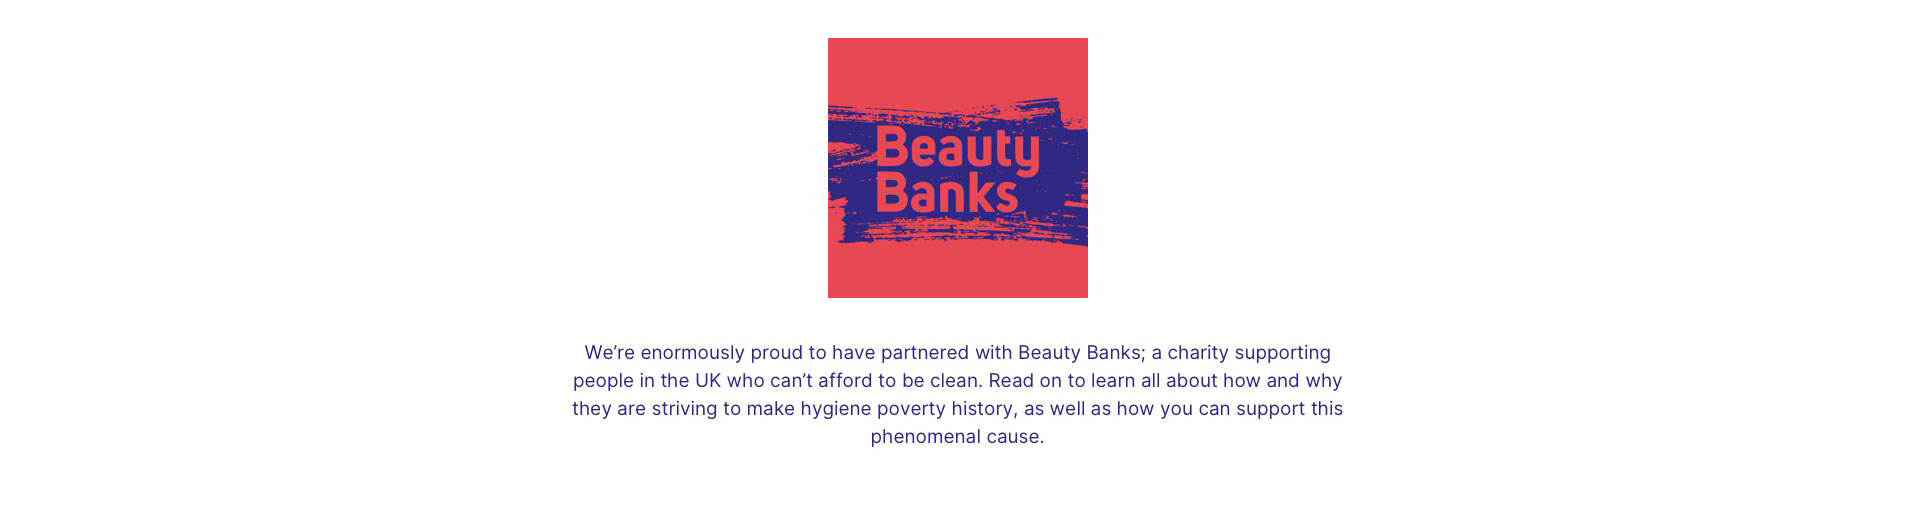 Beauty banks. We're enormously proud to have partnered with Beauty Banks; a charity supporting people in the UK who can't afford to be clean. Read on to learn all about how and why they are striving to make hygiene poverty history, as well as how you can support this phenomenal cause.